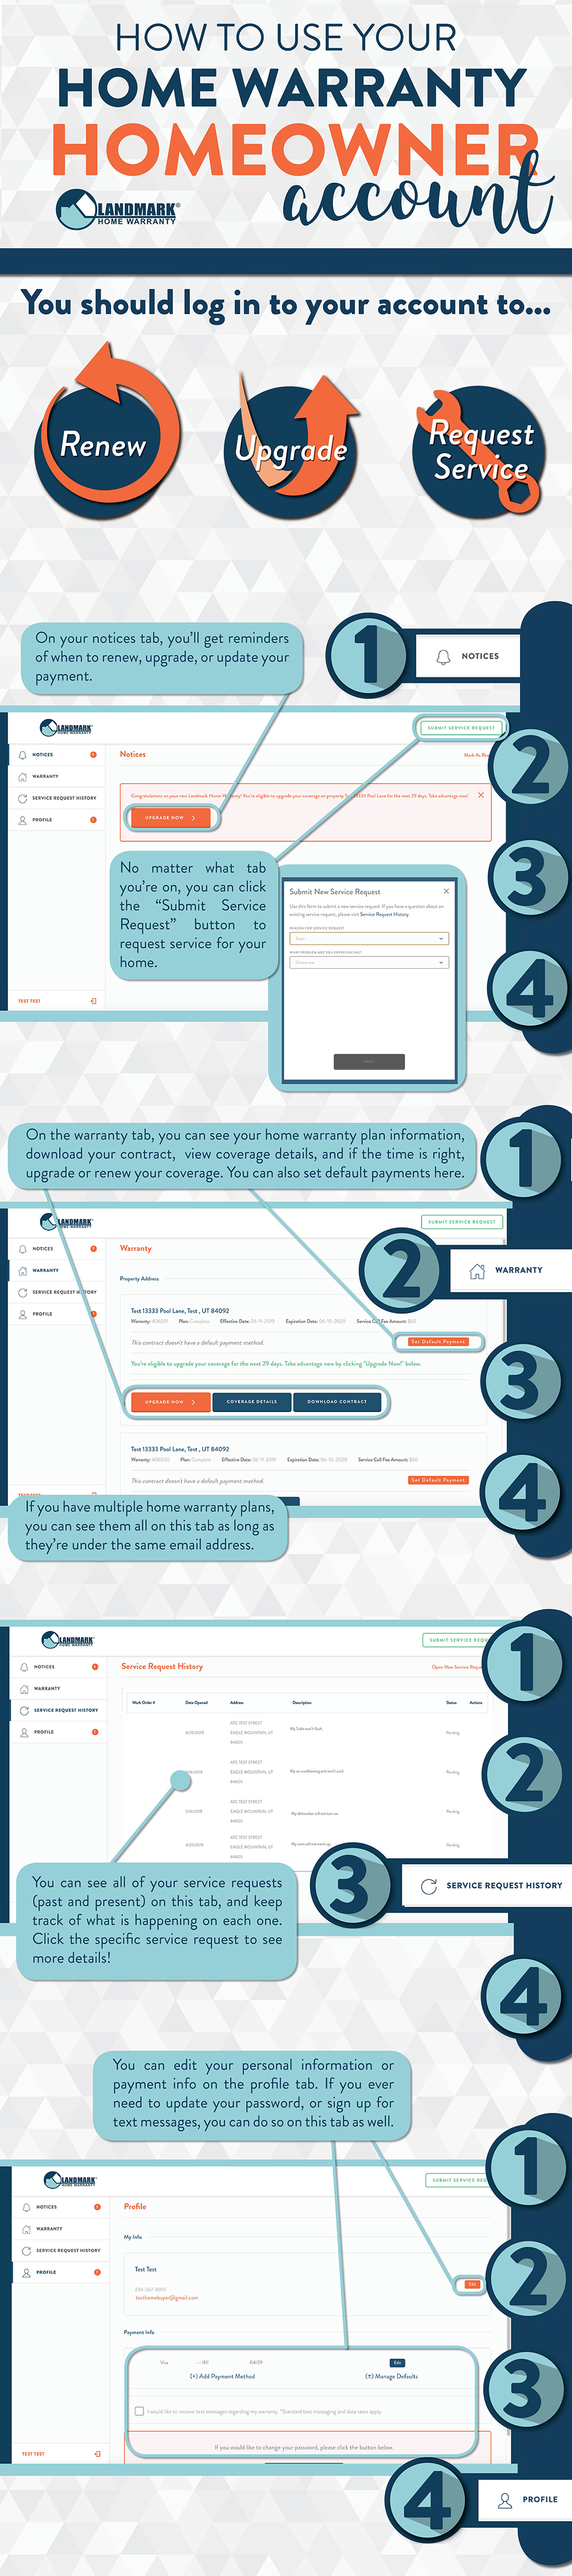 How to use a Landmark Home Warranty account online full infographic.